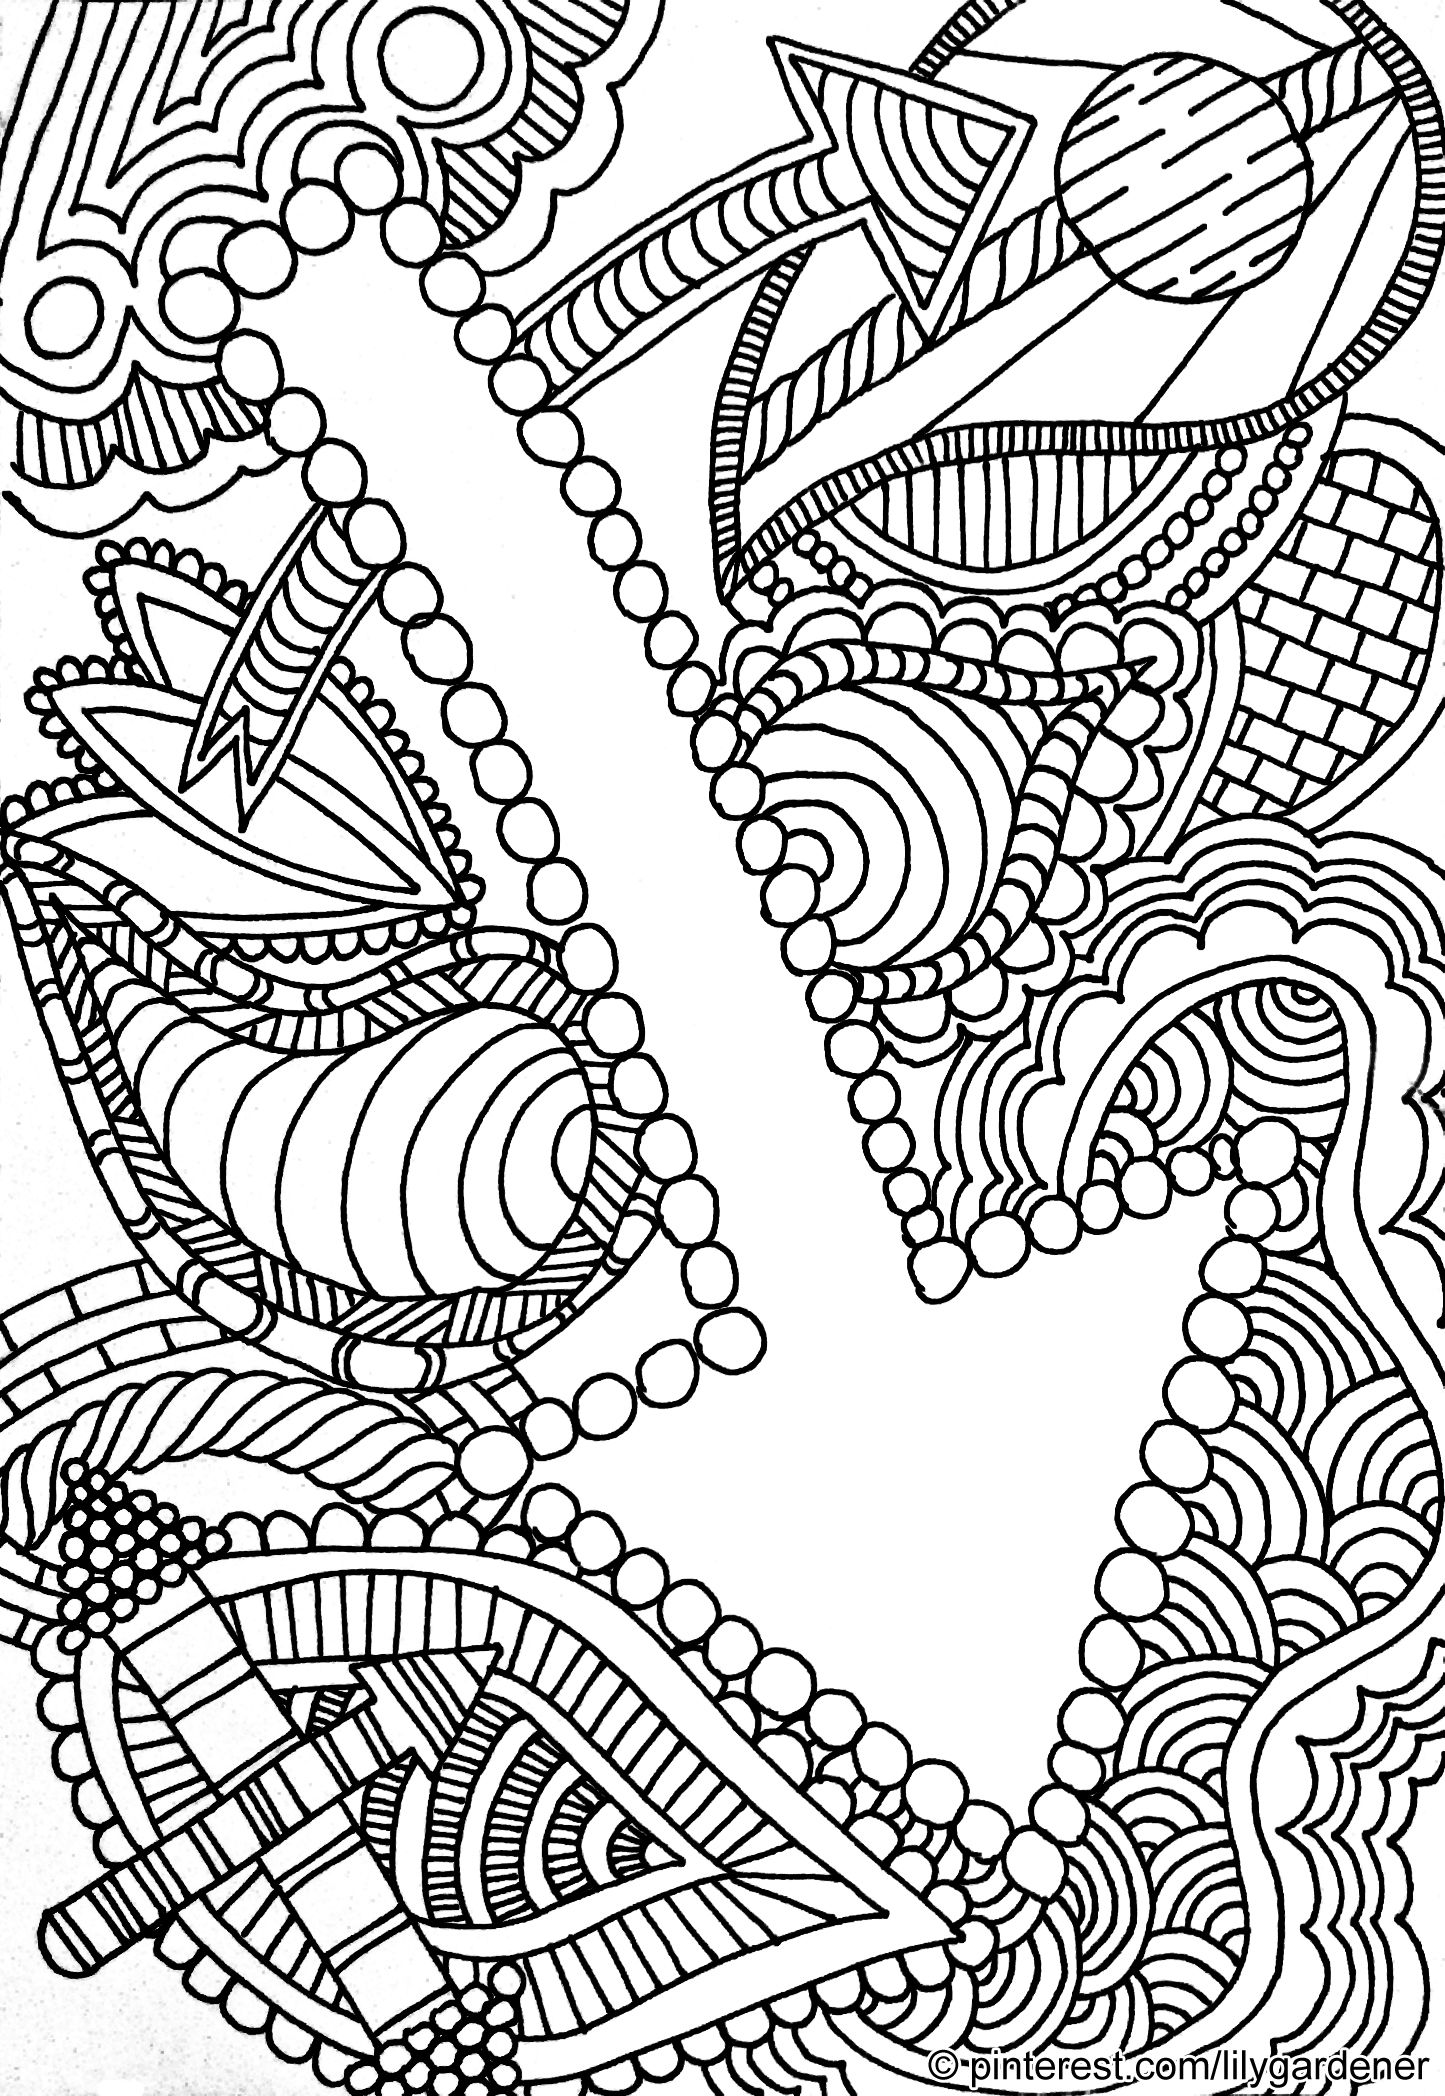 coloring images to print free printable peacock coloring pages for kids print coloring to images